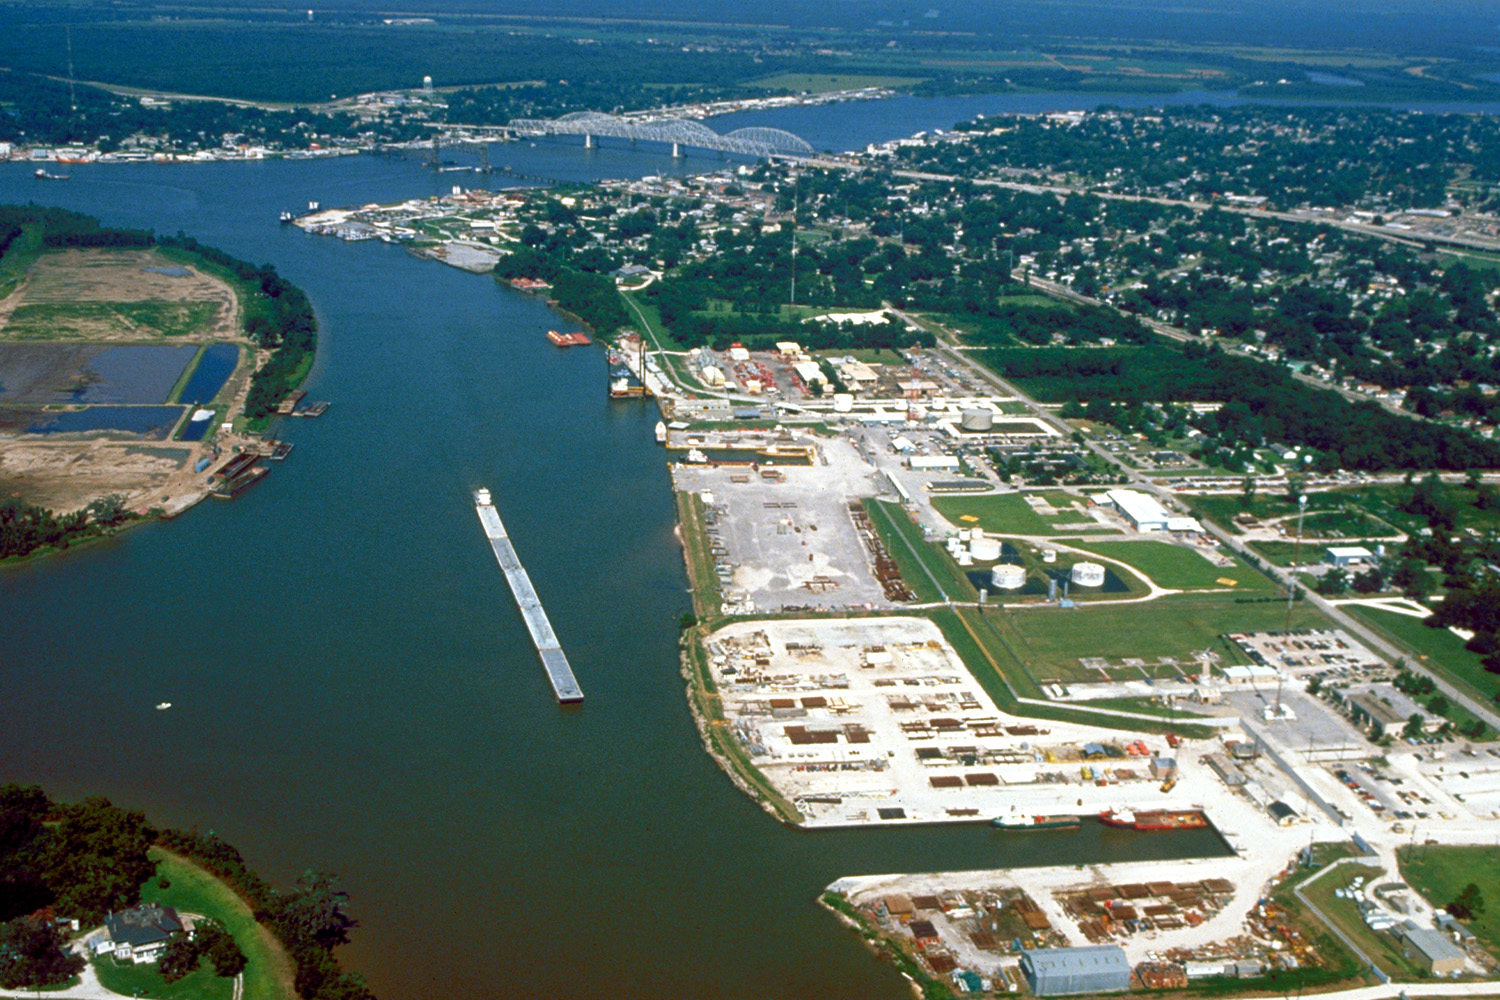 Morgan_City_Louisiana_aerial_view